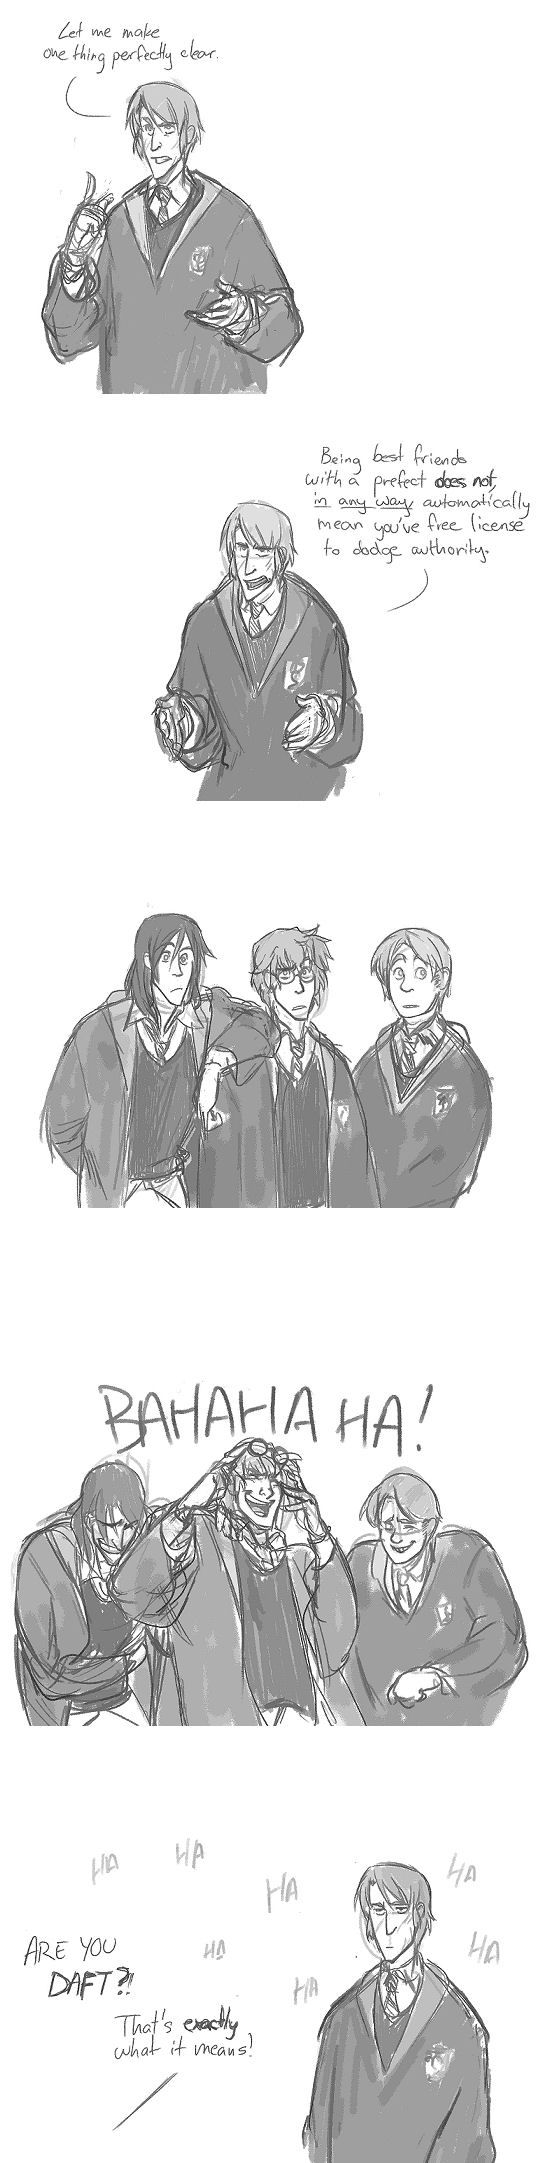 Harry Potter - perfectly clear by chirart.deviantart.com.